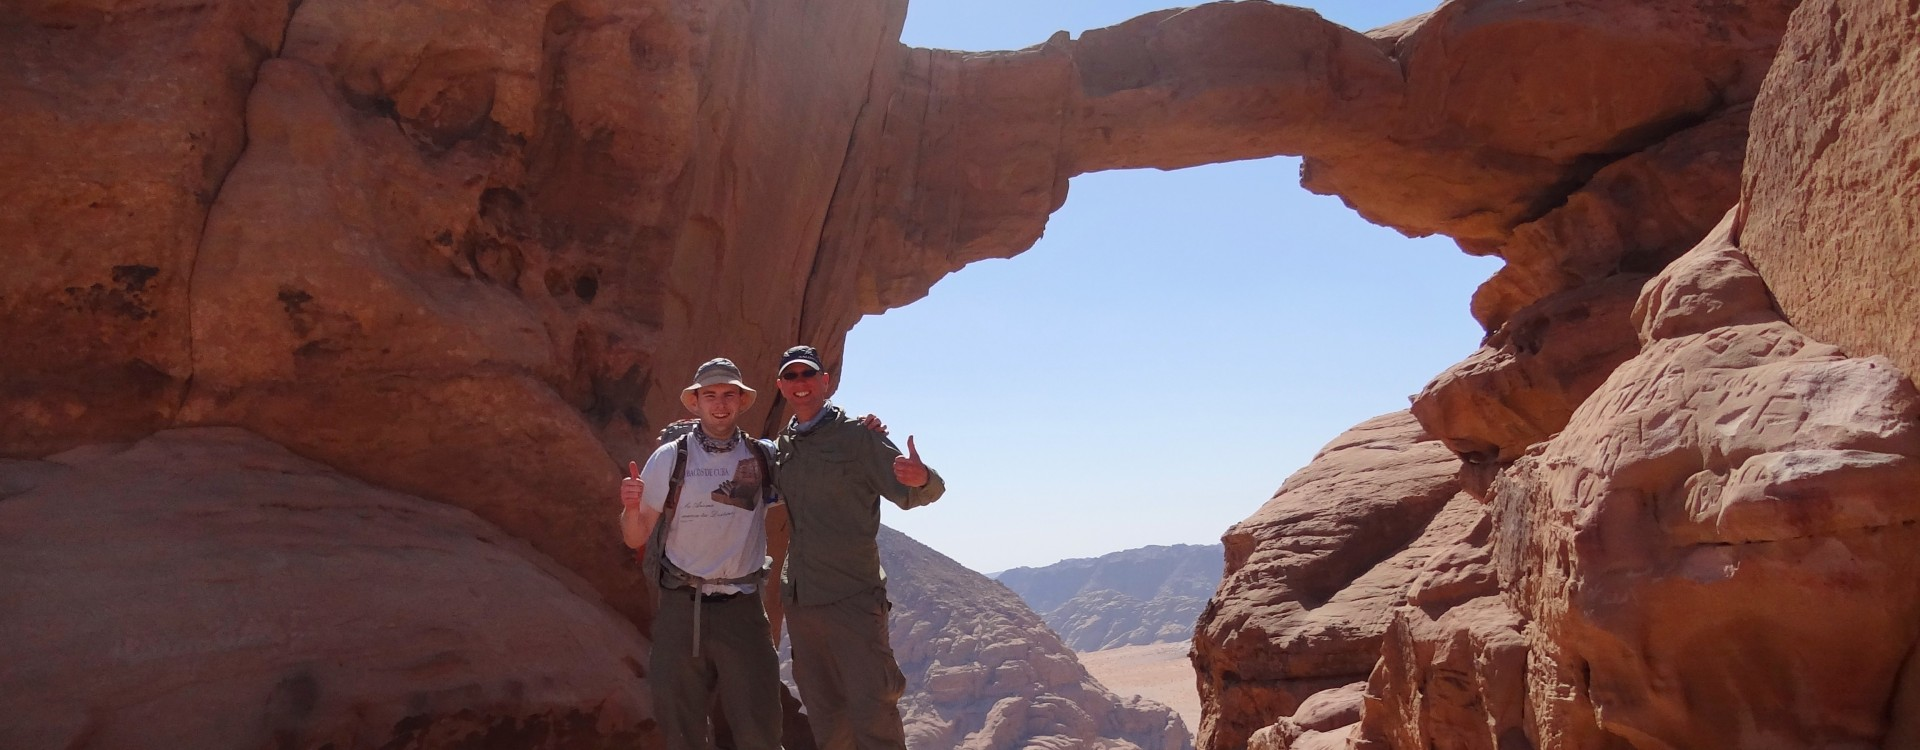 Burdah Bridge, Wadi Rum